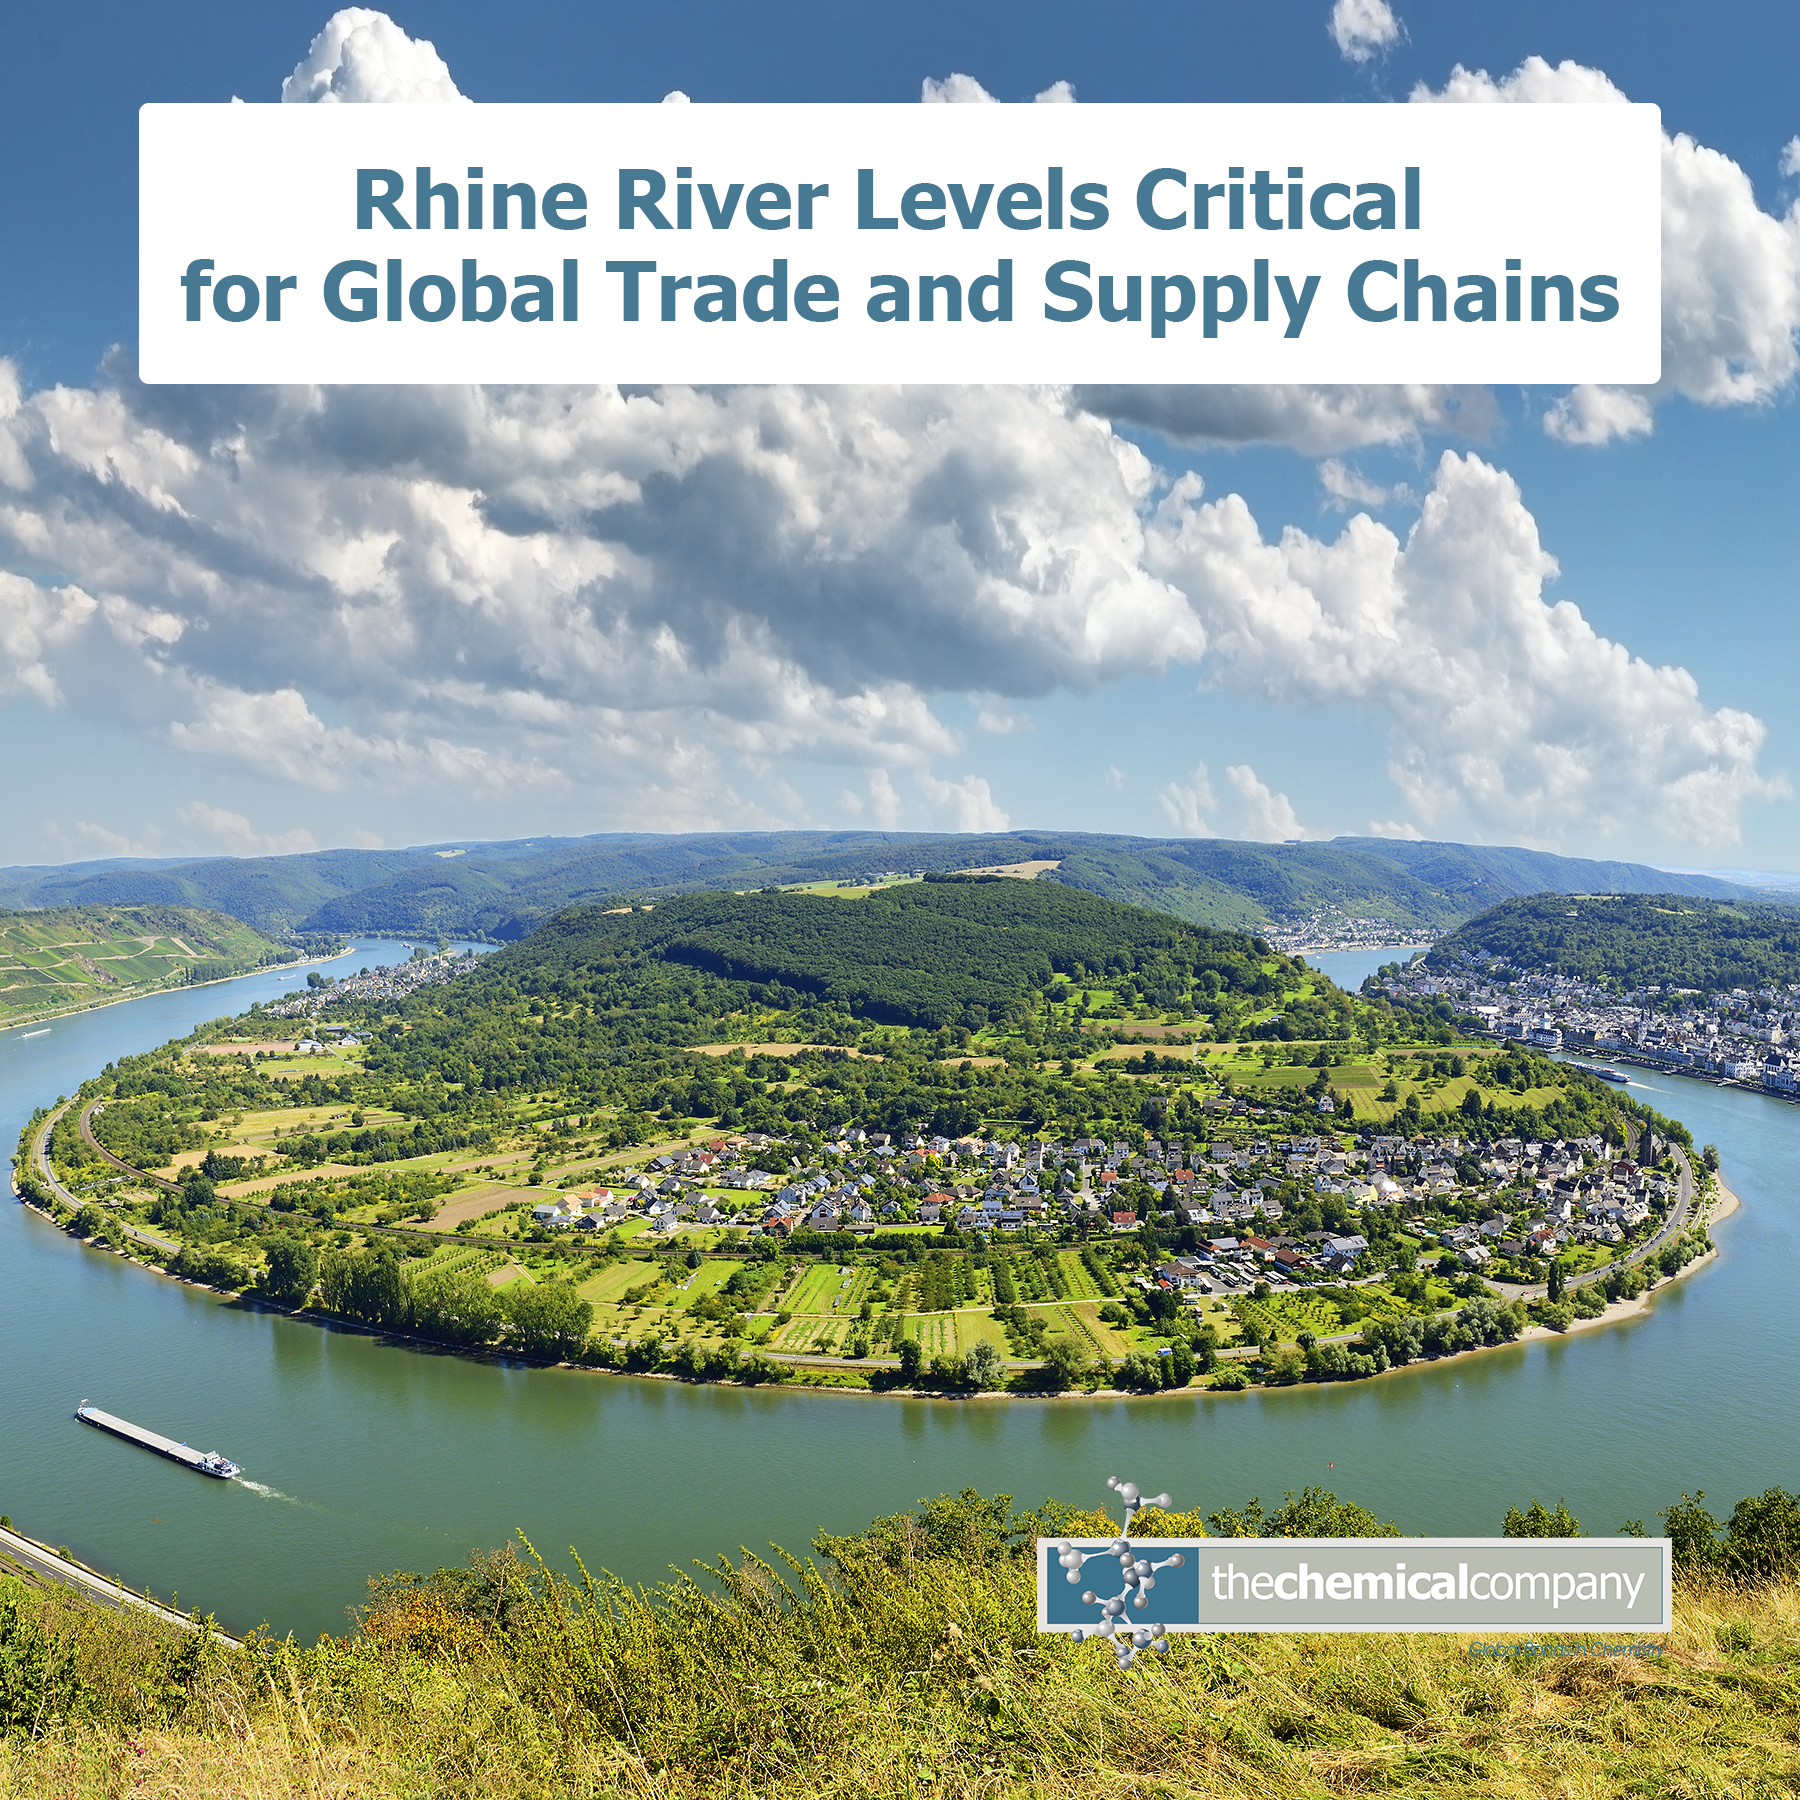 rhine river critical levels for the chemical company